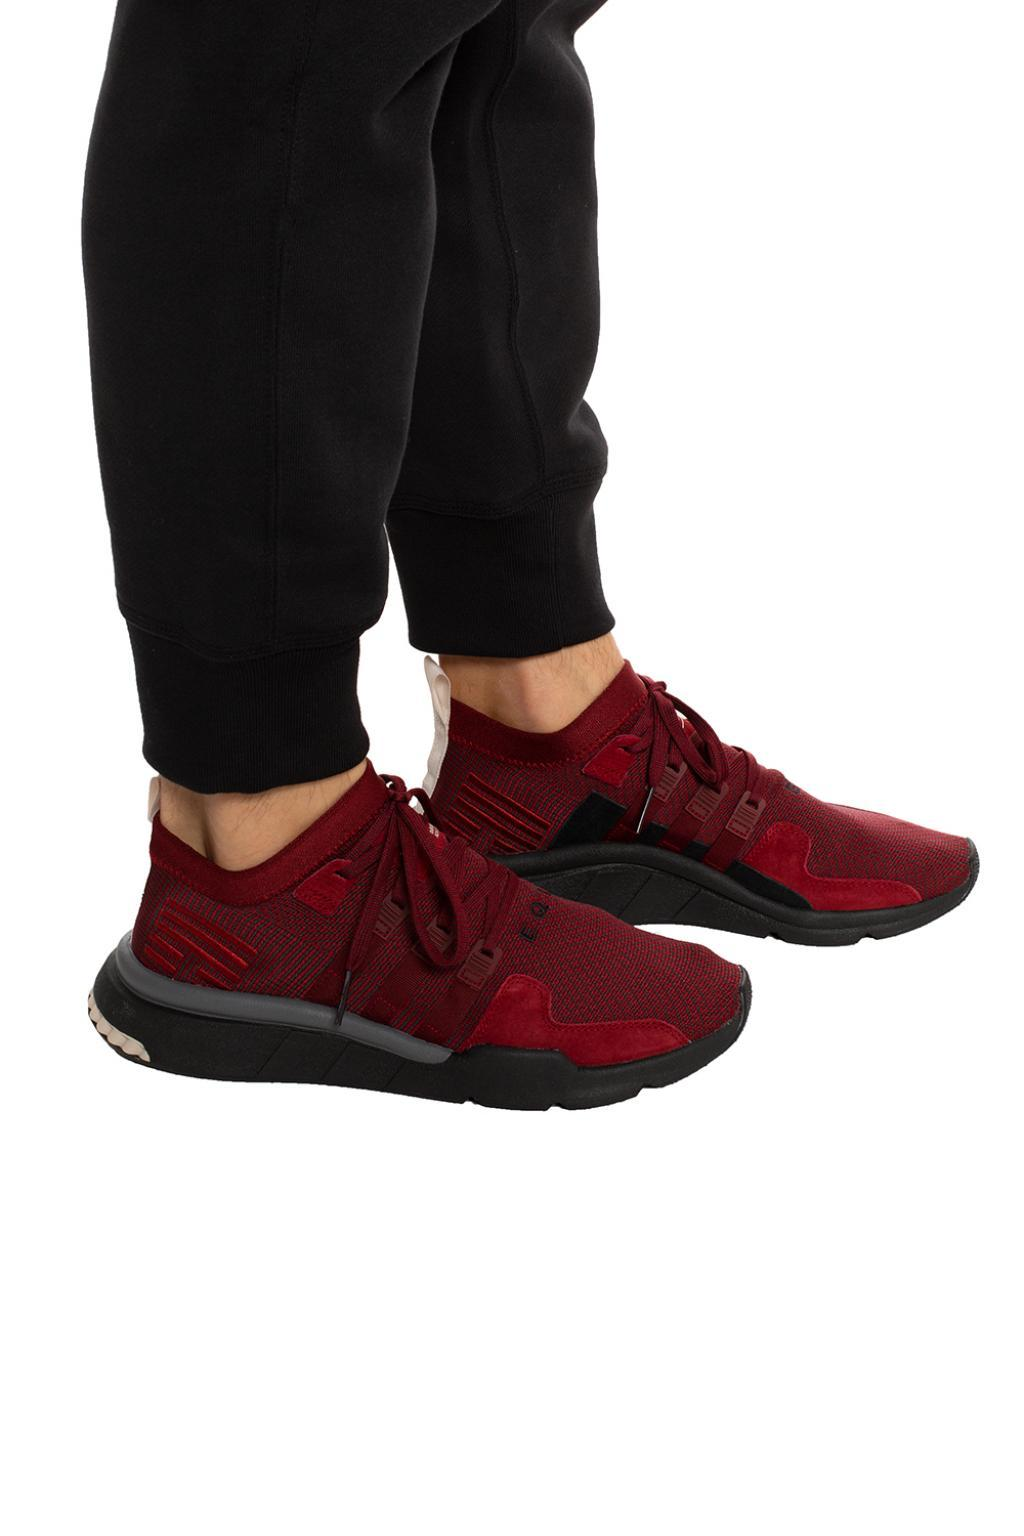 Mid Men Originals For 'eqt Adv' Adidas Support Sock Red Sneakers N8wPkn0OX